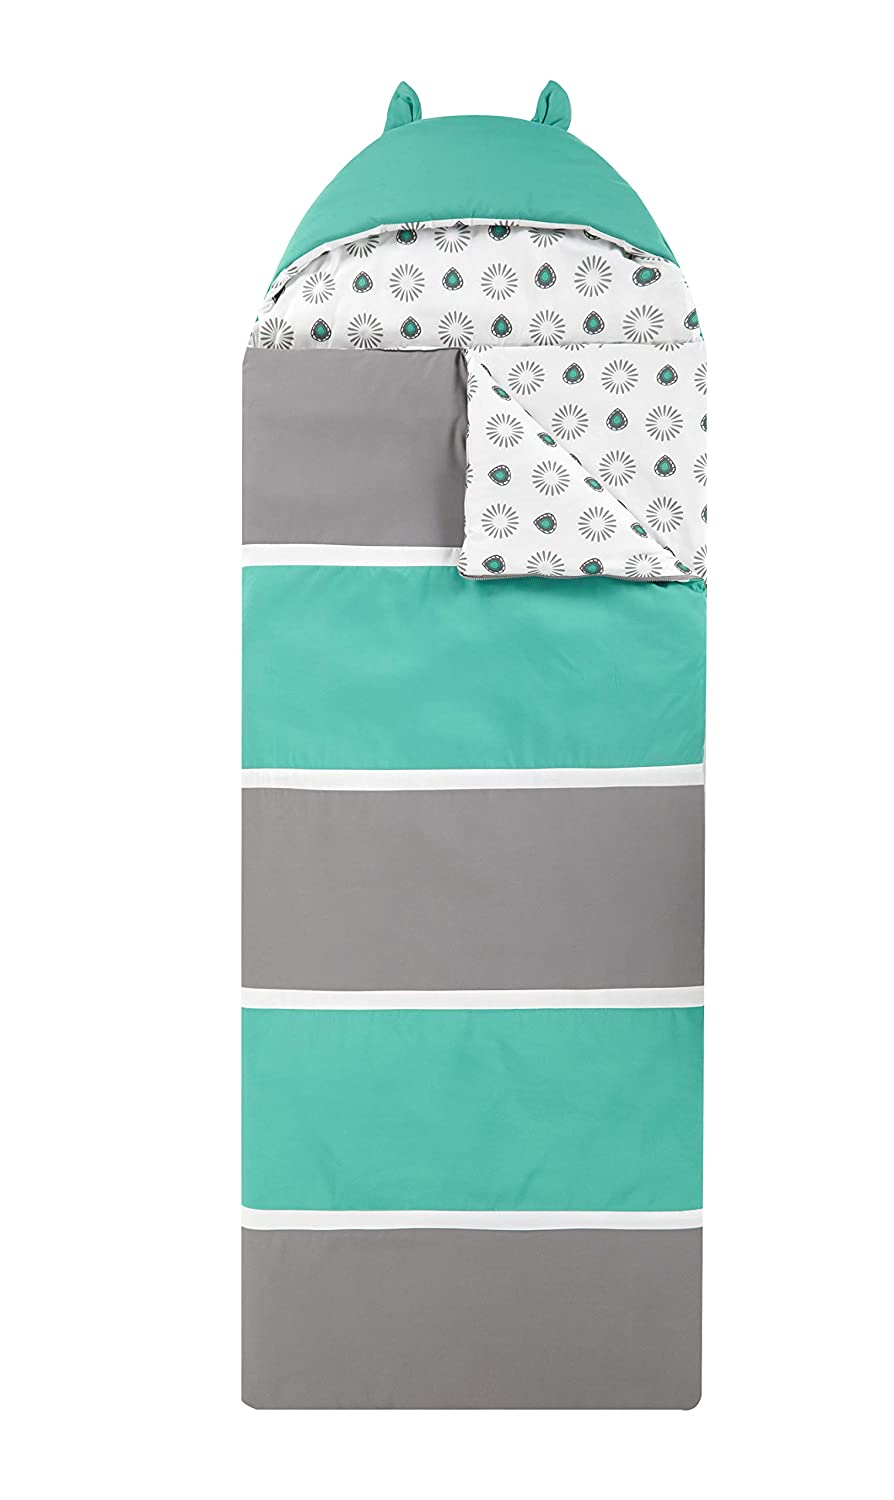 Twin X-Long Grey//Aqua Chic Home Hayes Sleeping Bag with Cat Ear Hood Two Tone Design with Geometric Pattern Print Interior for KidsTeens /& Young Adults Zipper Closure